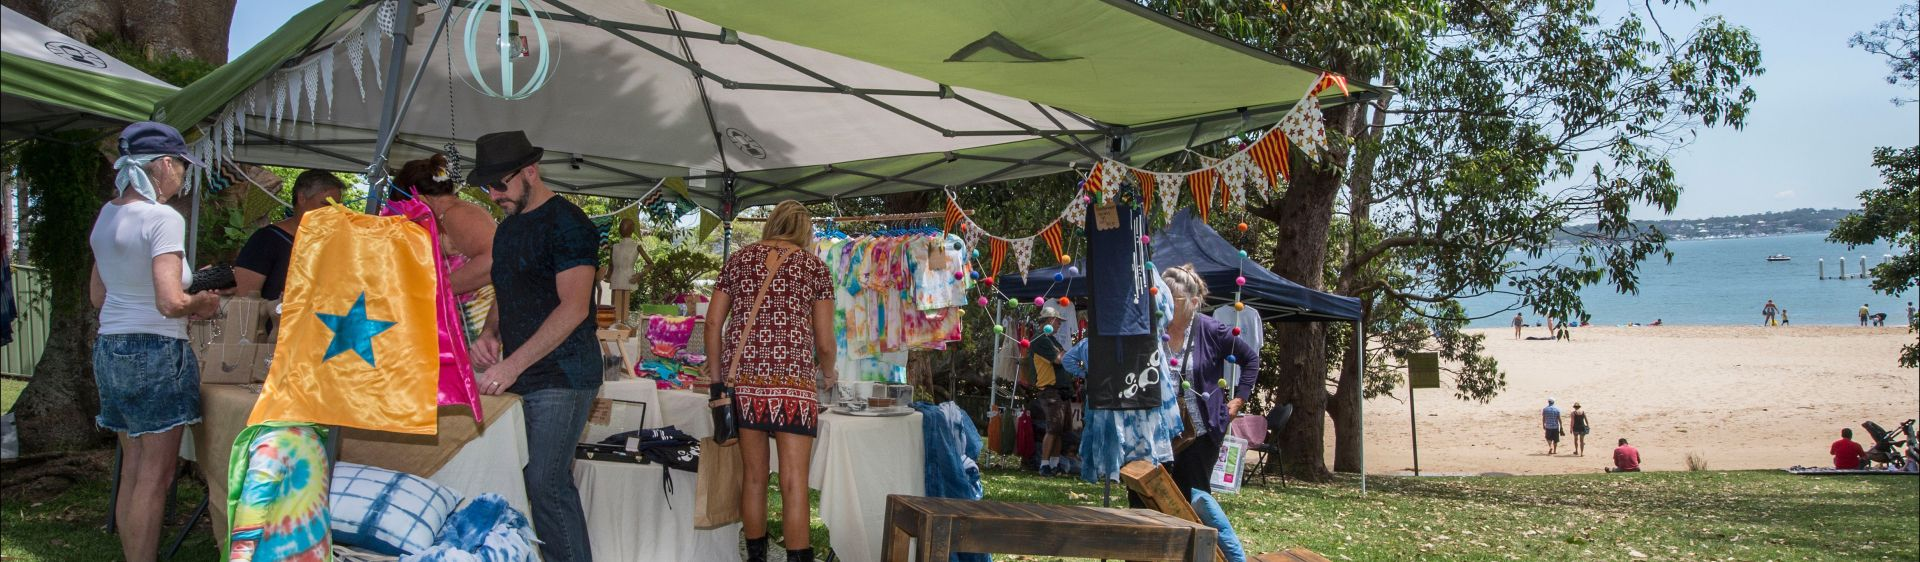 Bundeena Saltwater Market, Sydney South